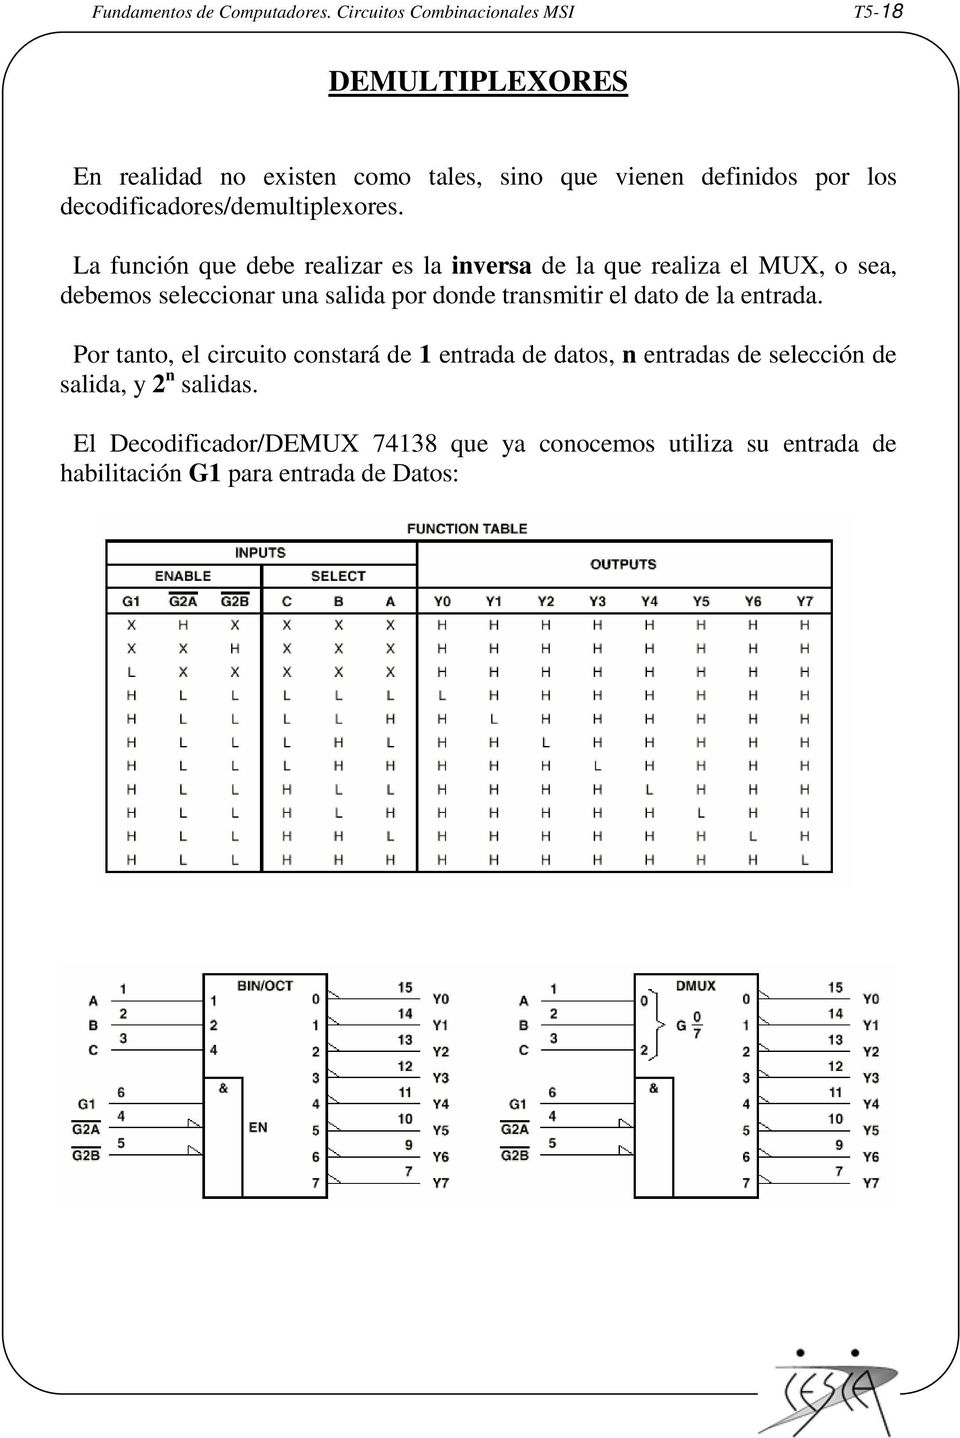 decodificadores/demultiplexores.